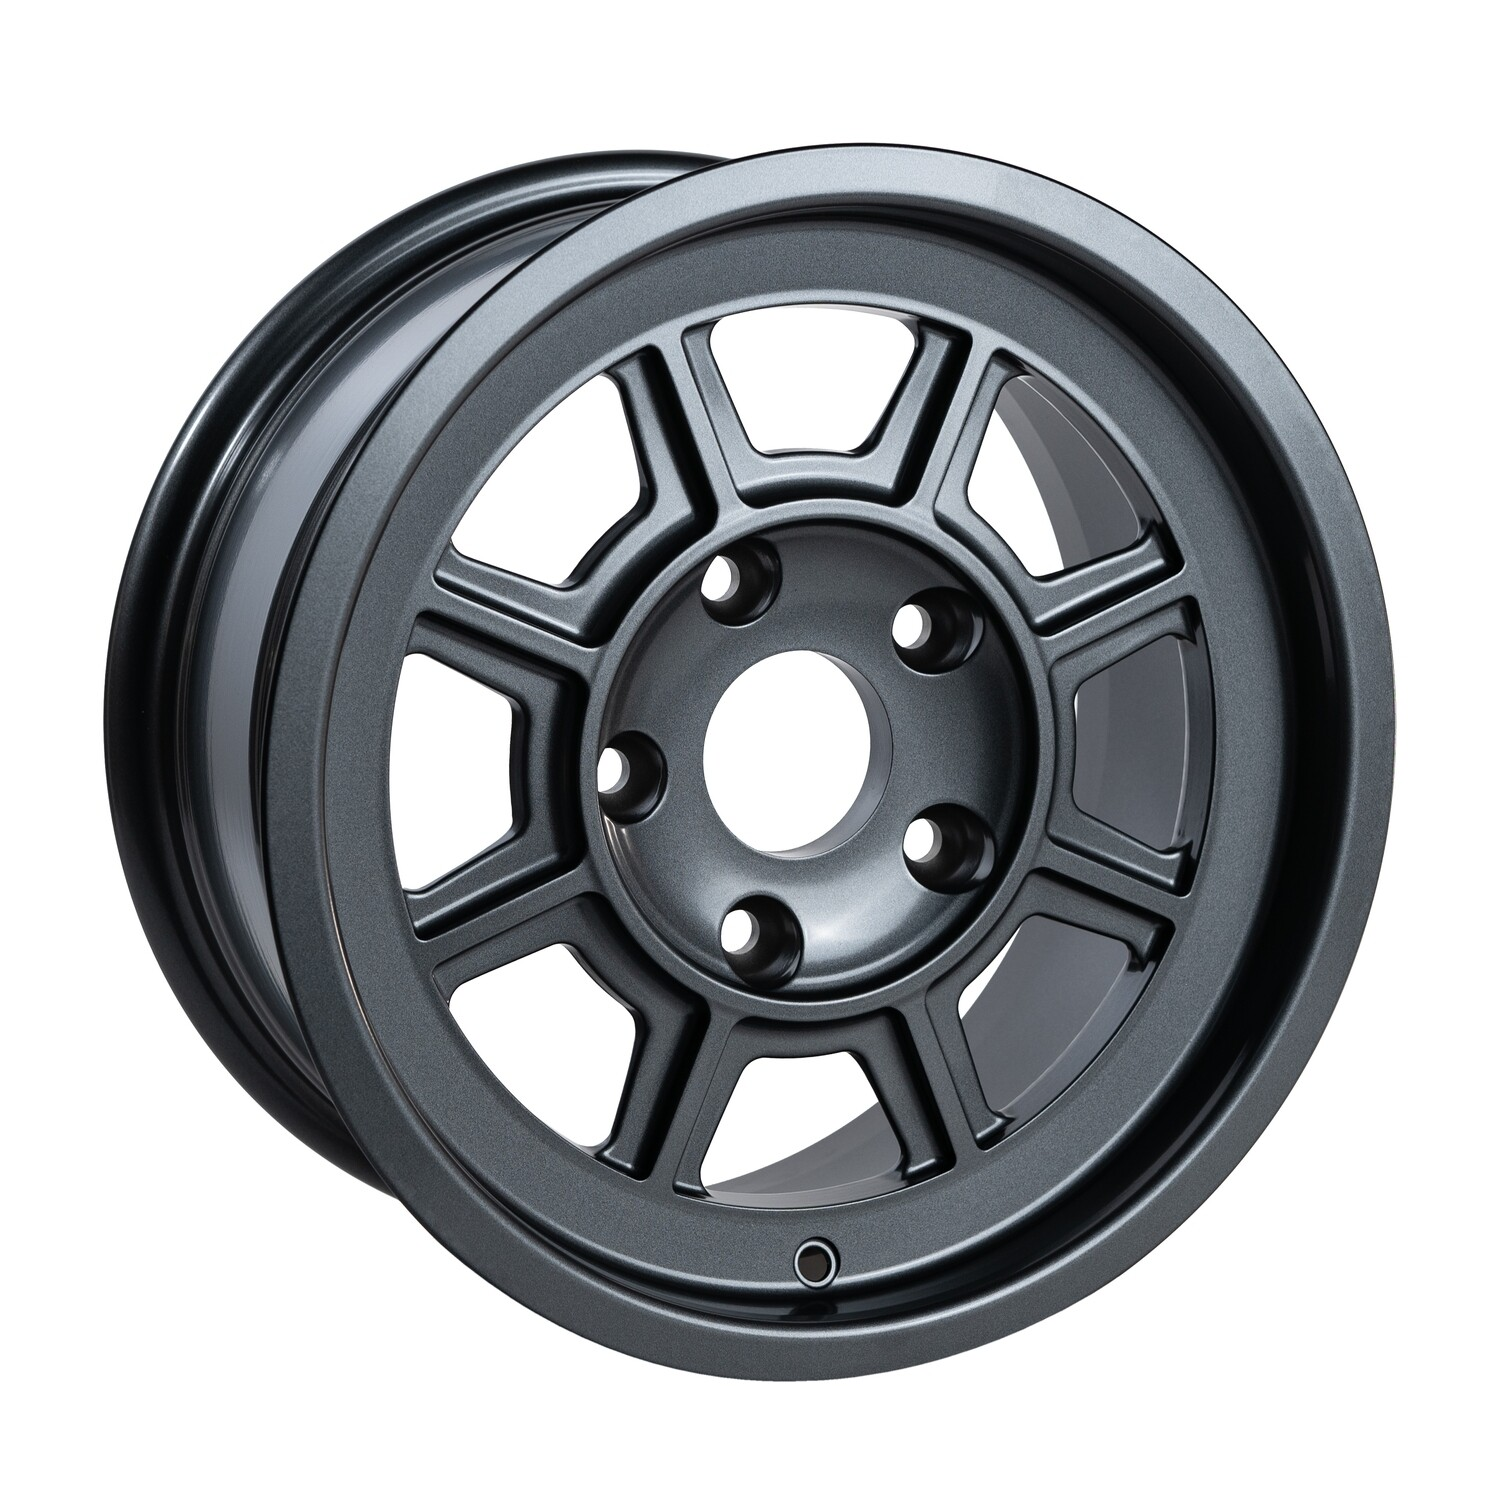 PAG1570P Satin Anthracite 15 x 7